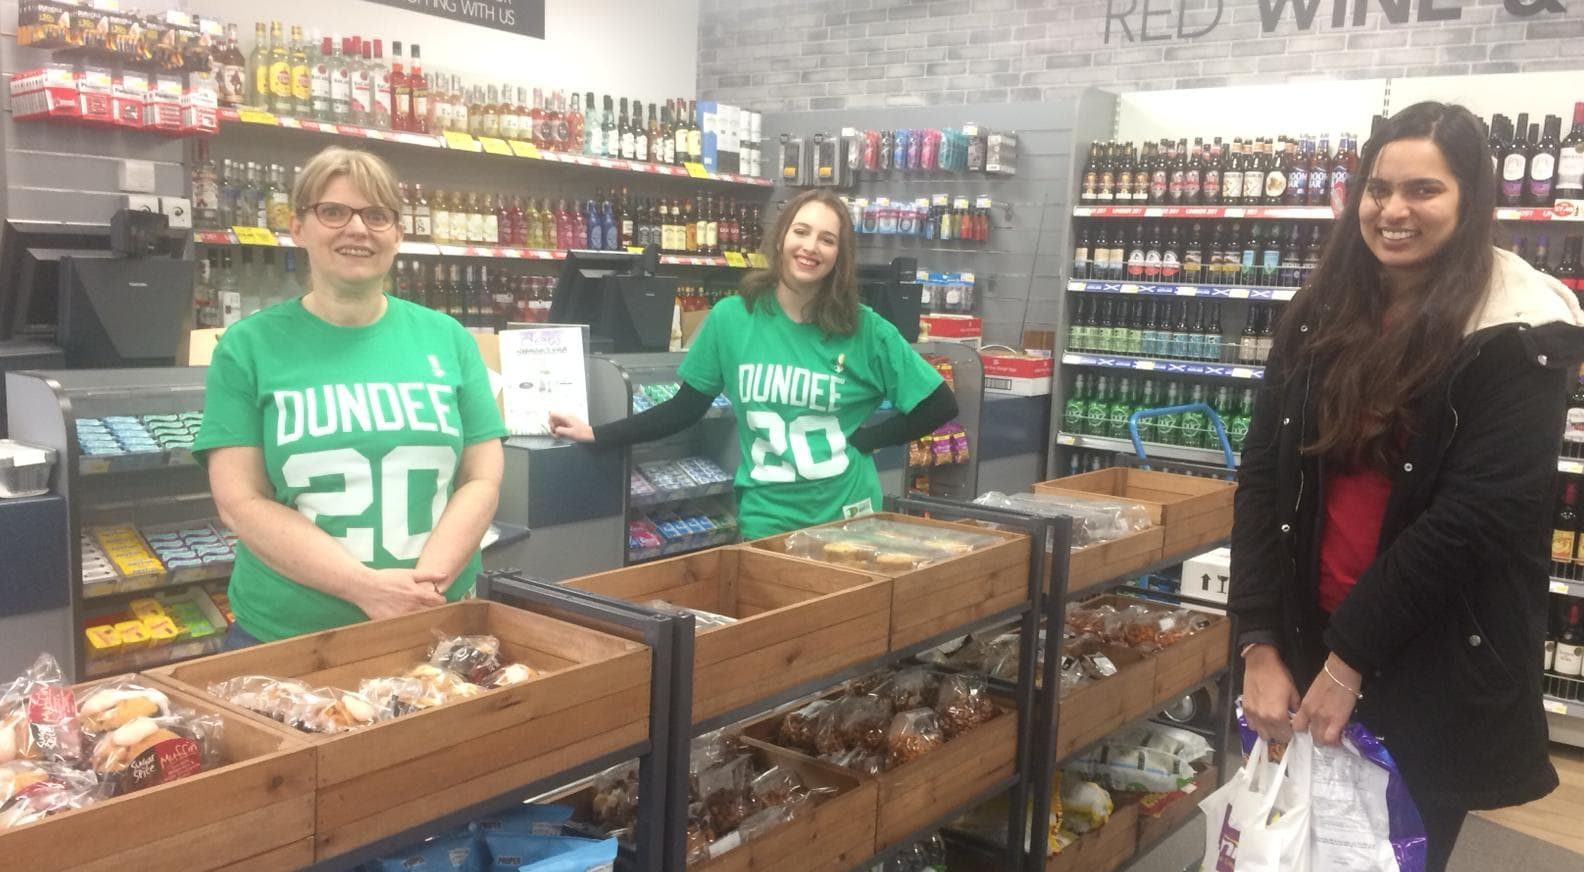 Moira Dean, Premier store manager and Lauren Macgregor, vice president of student welfare, are pictured with a student.